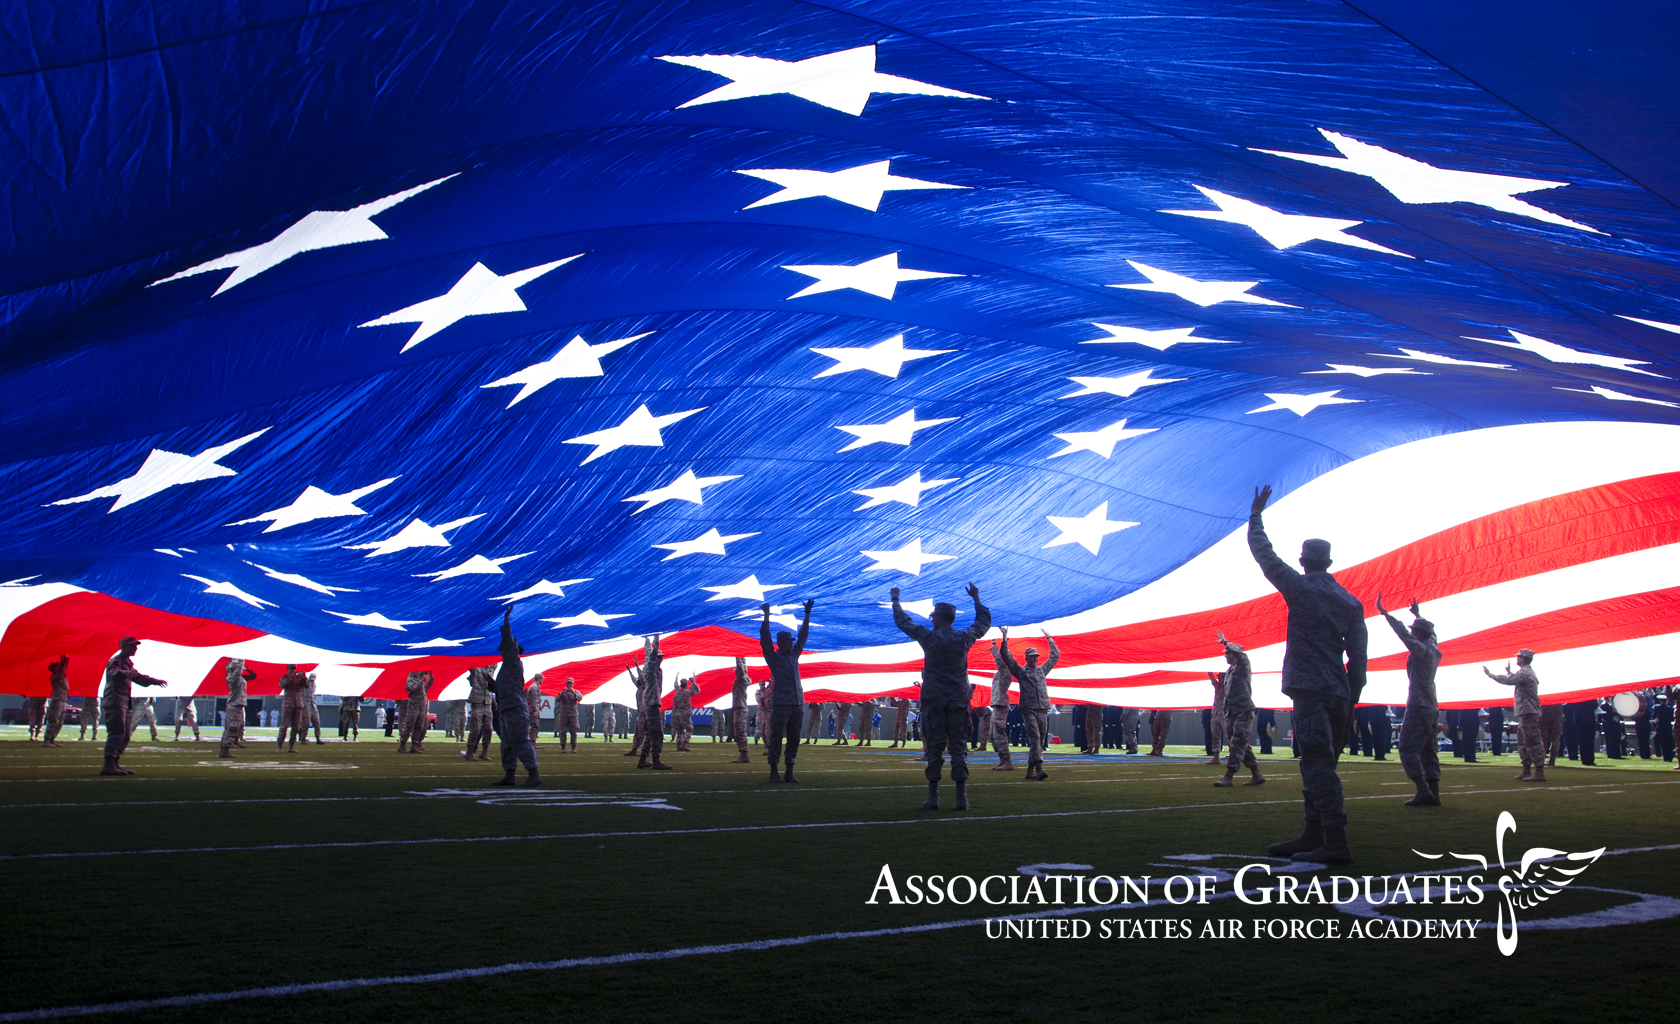 Air Force Academy US Flag Wallpaper 1680x1024